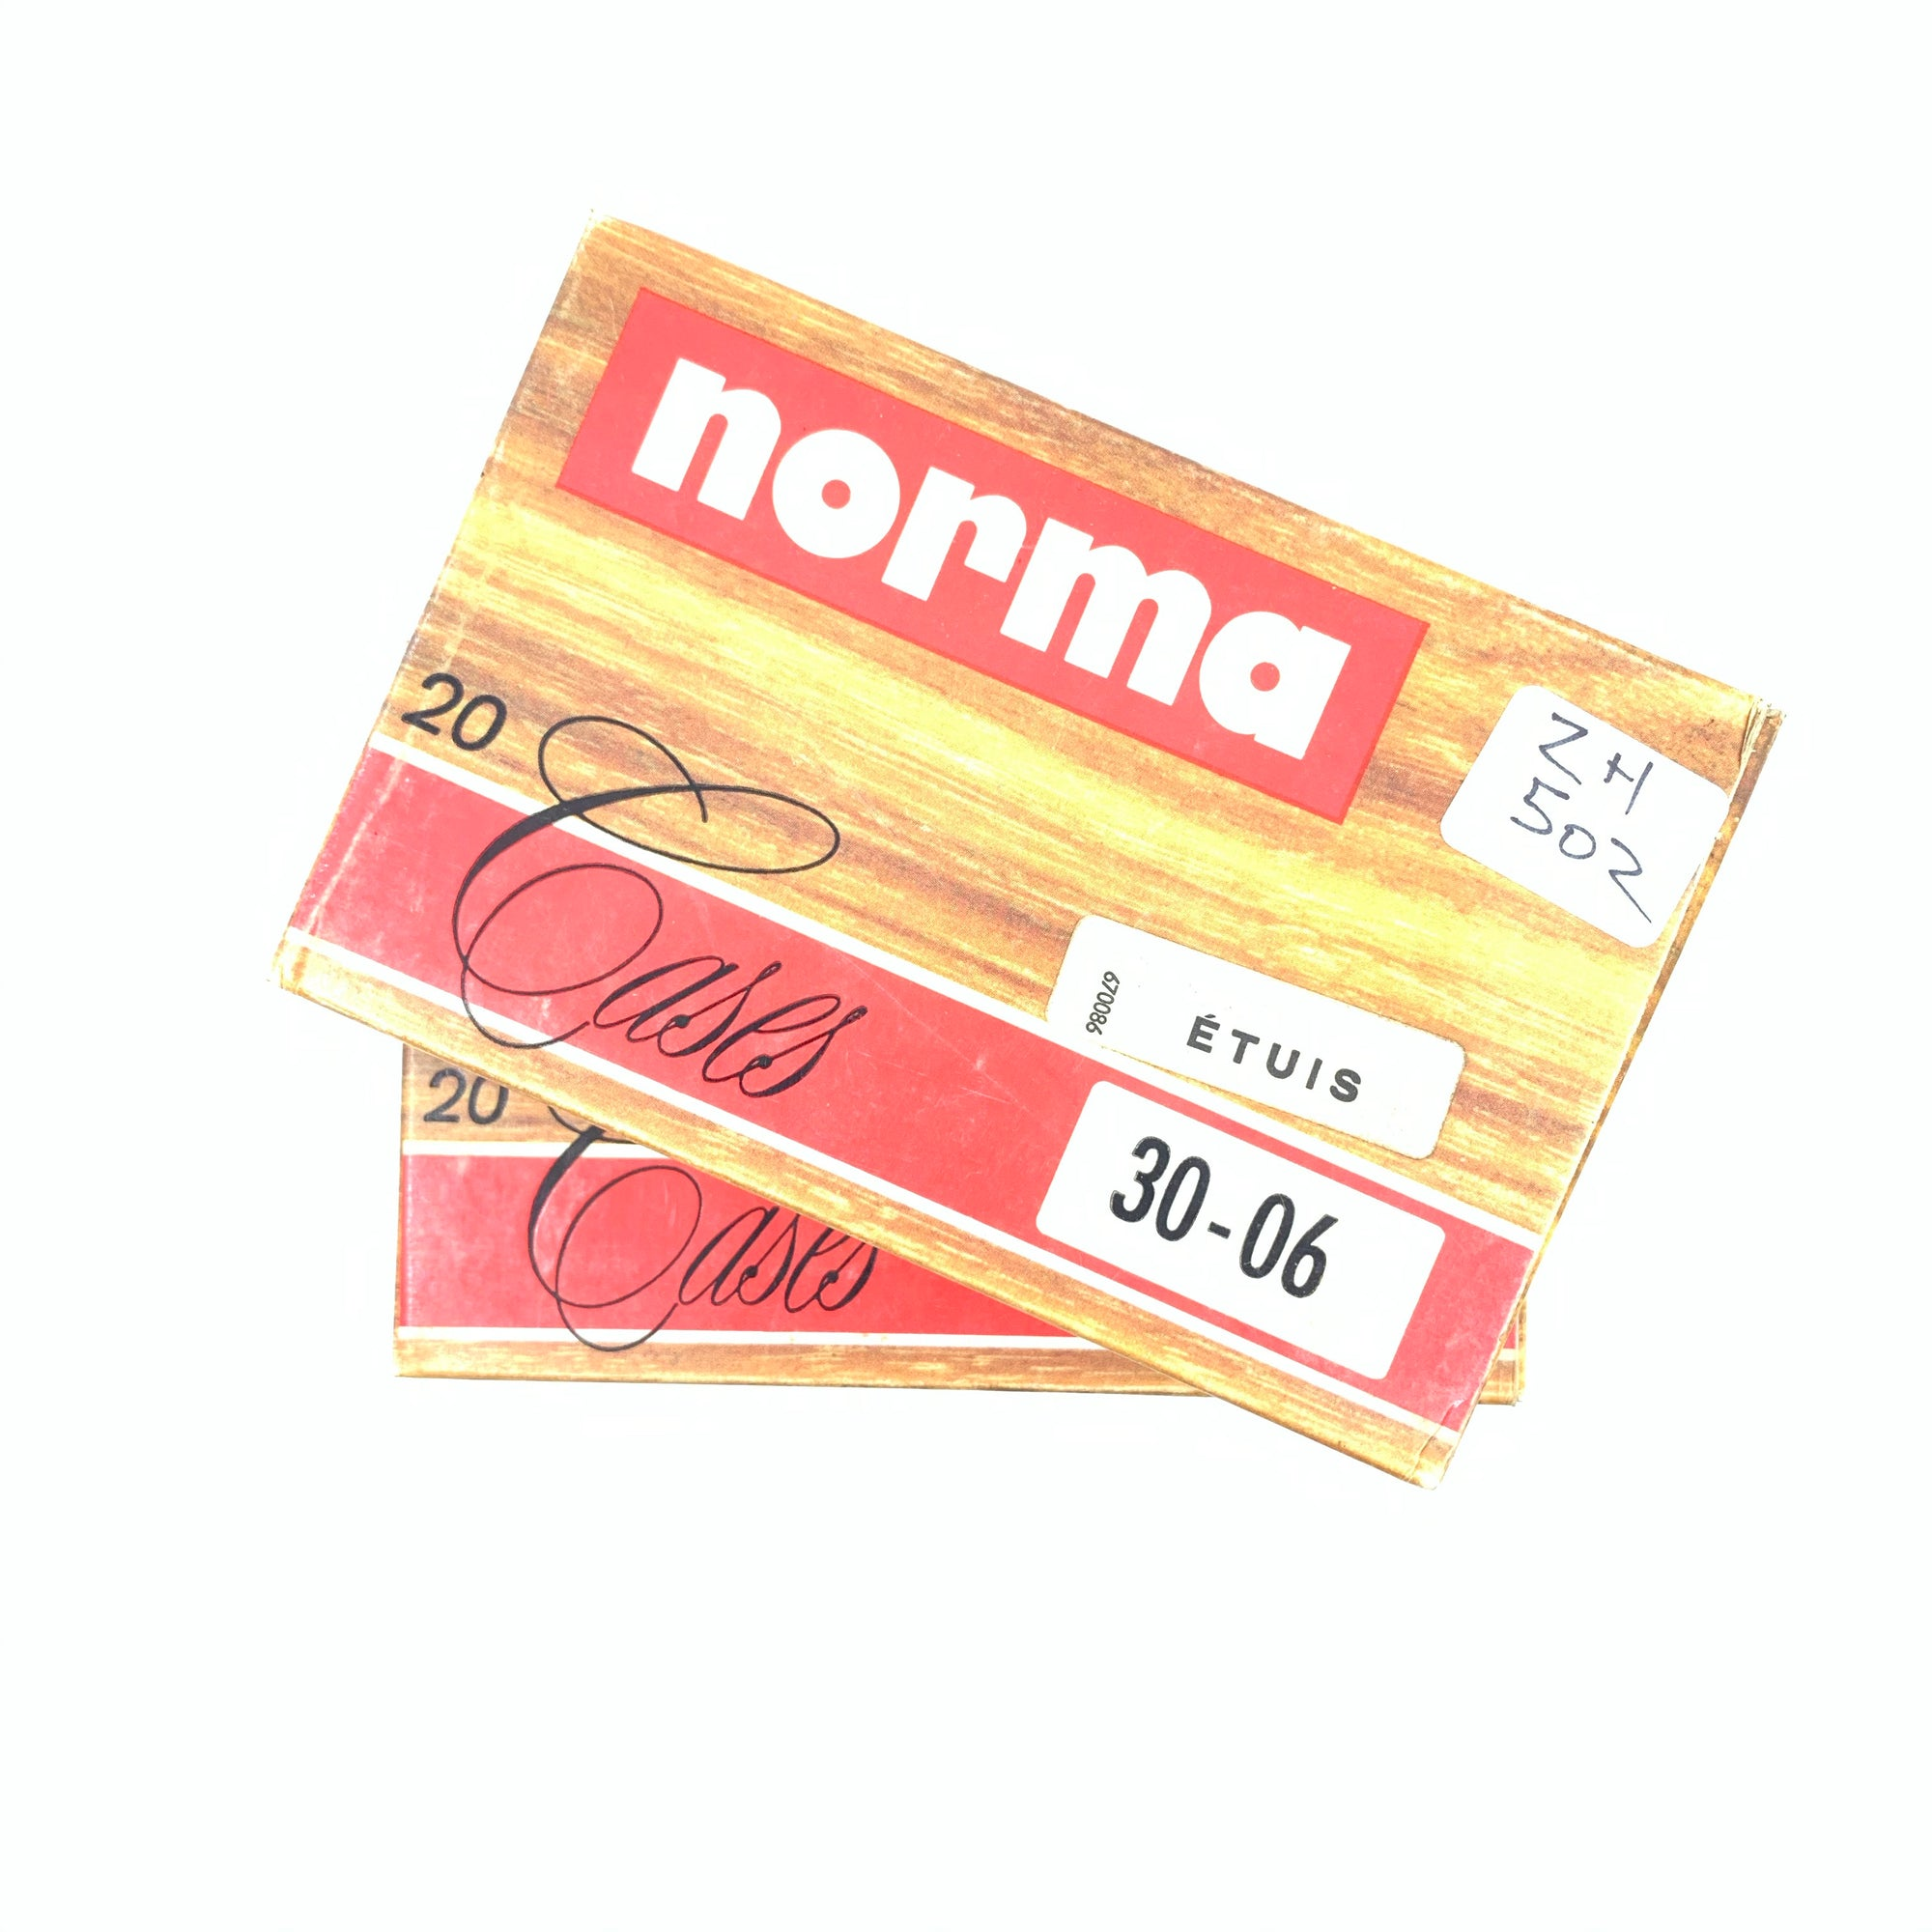 Norma 40 Rounds Unprimed 30-06 Sprg Brass